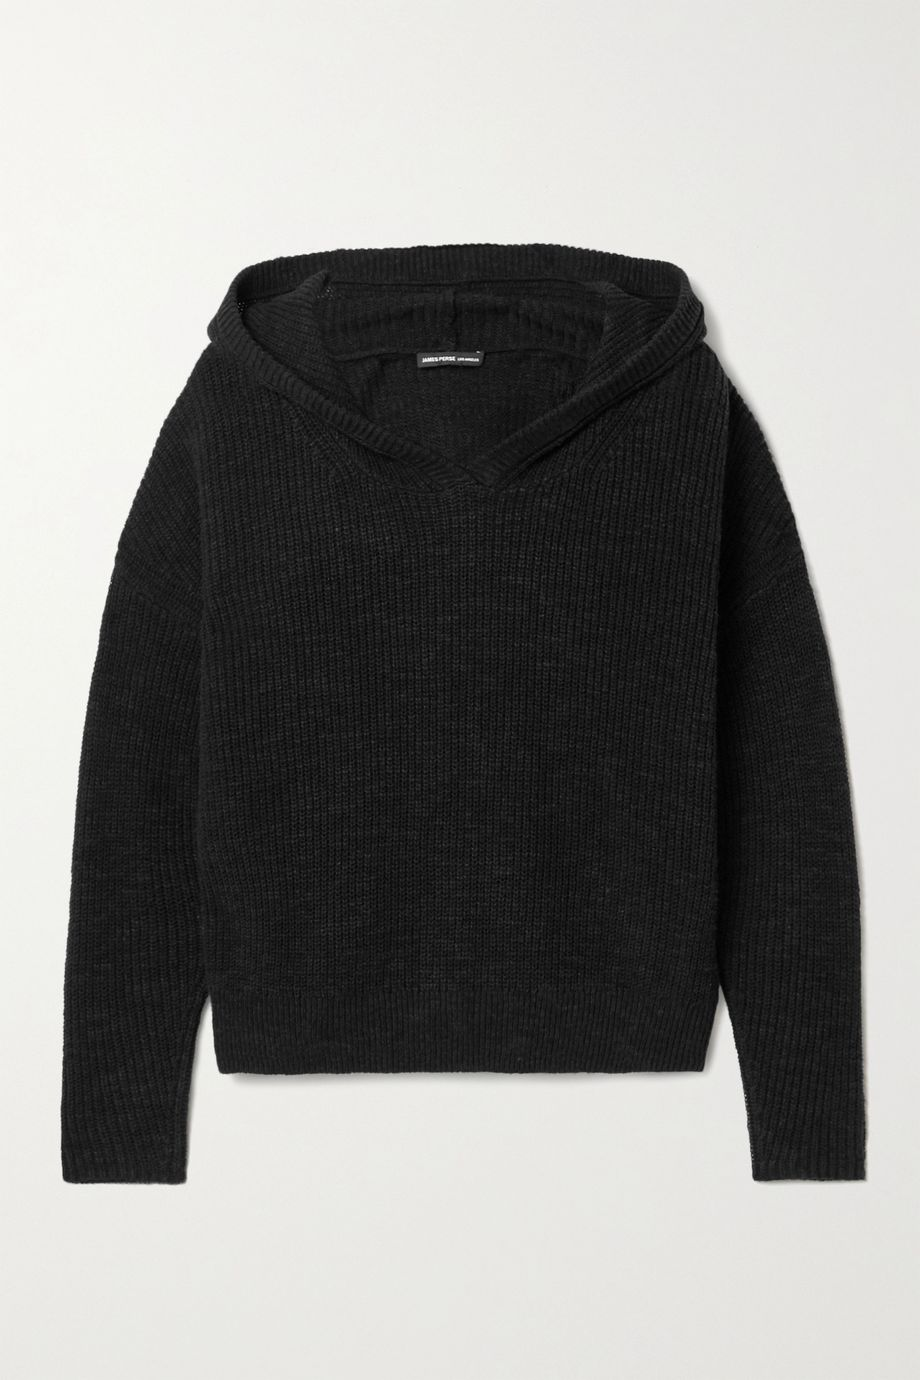 James Perse Ribbed cotton and linen-blend hoodie